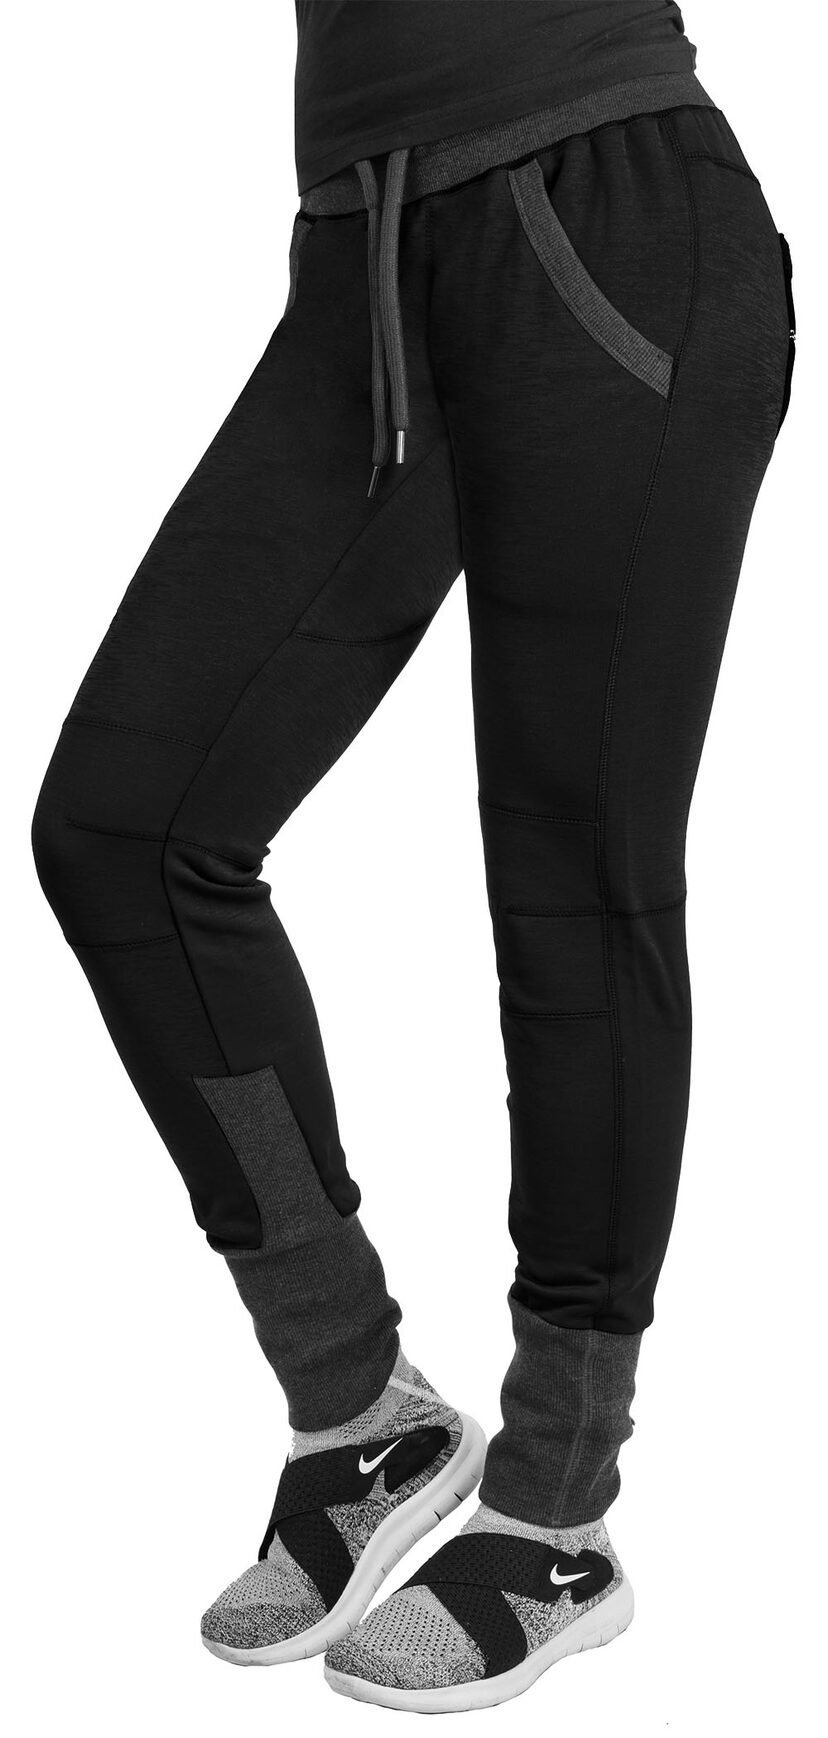 Illusion Pants Black Edition Women